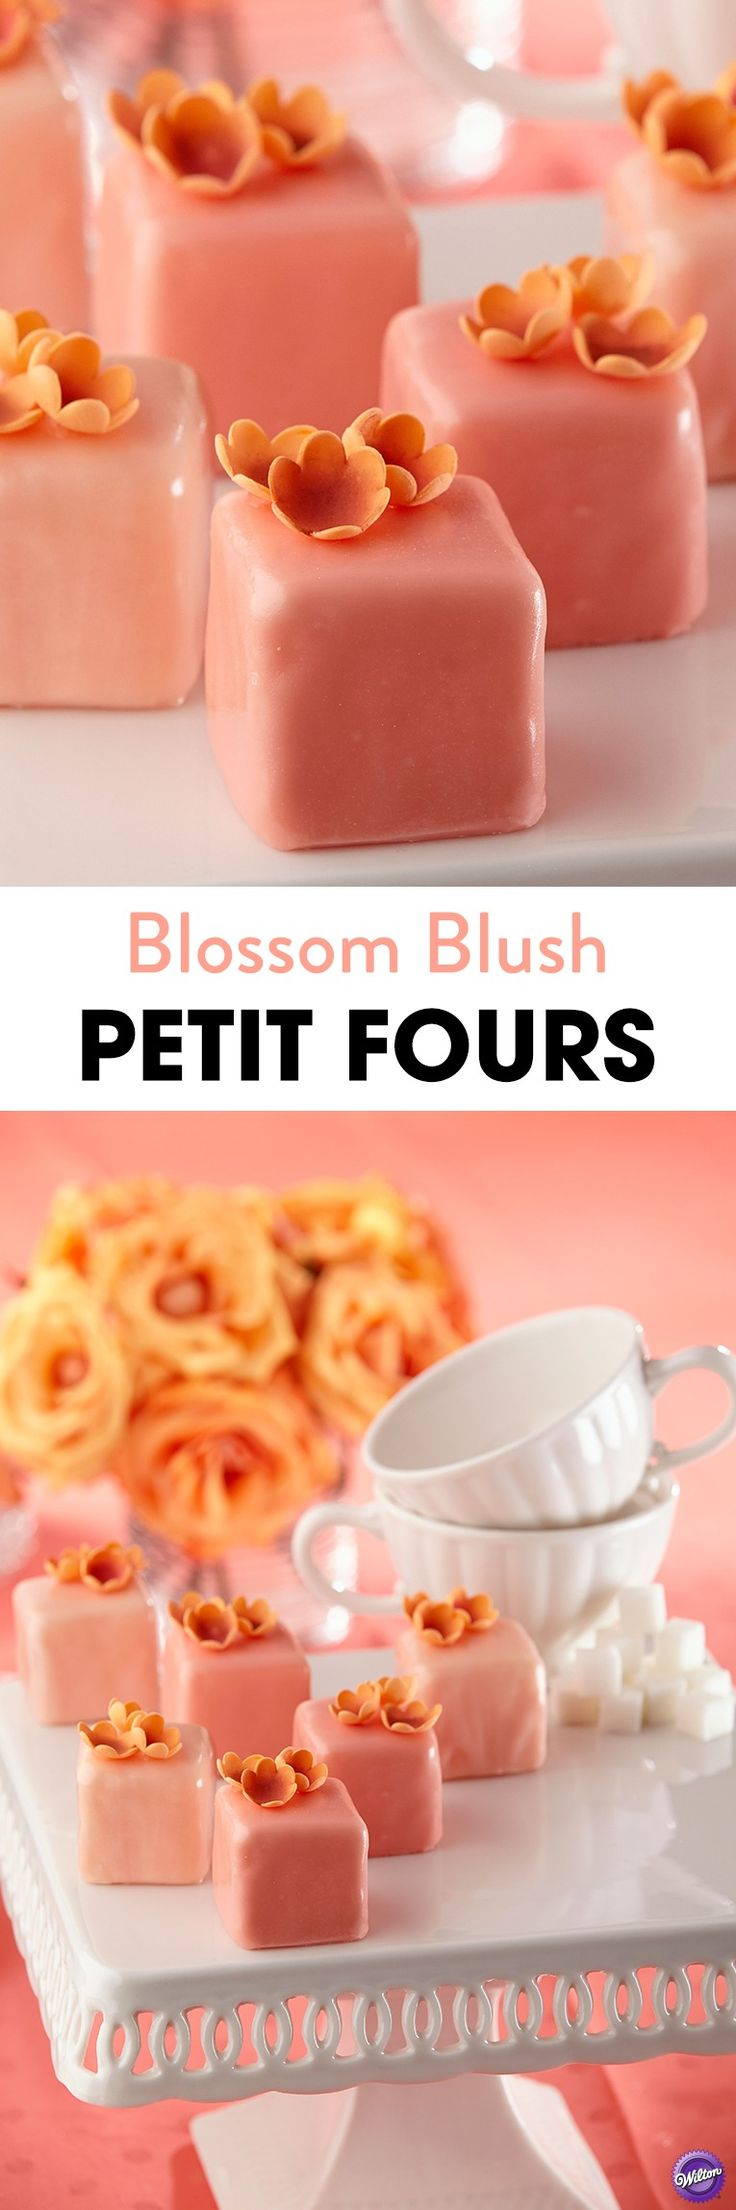 Make these cute petit fours for an afternoon tea or to celebrate special occasions lik Mother's Day, Valentine's Day or a wedding shower. Cover with luscious Candy Melts candy and top with tiny gum paste blossoms.